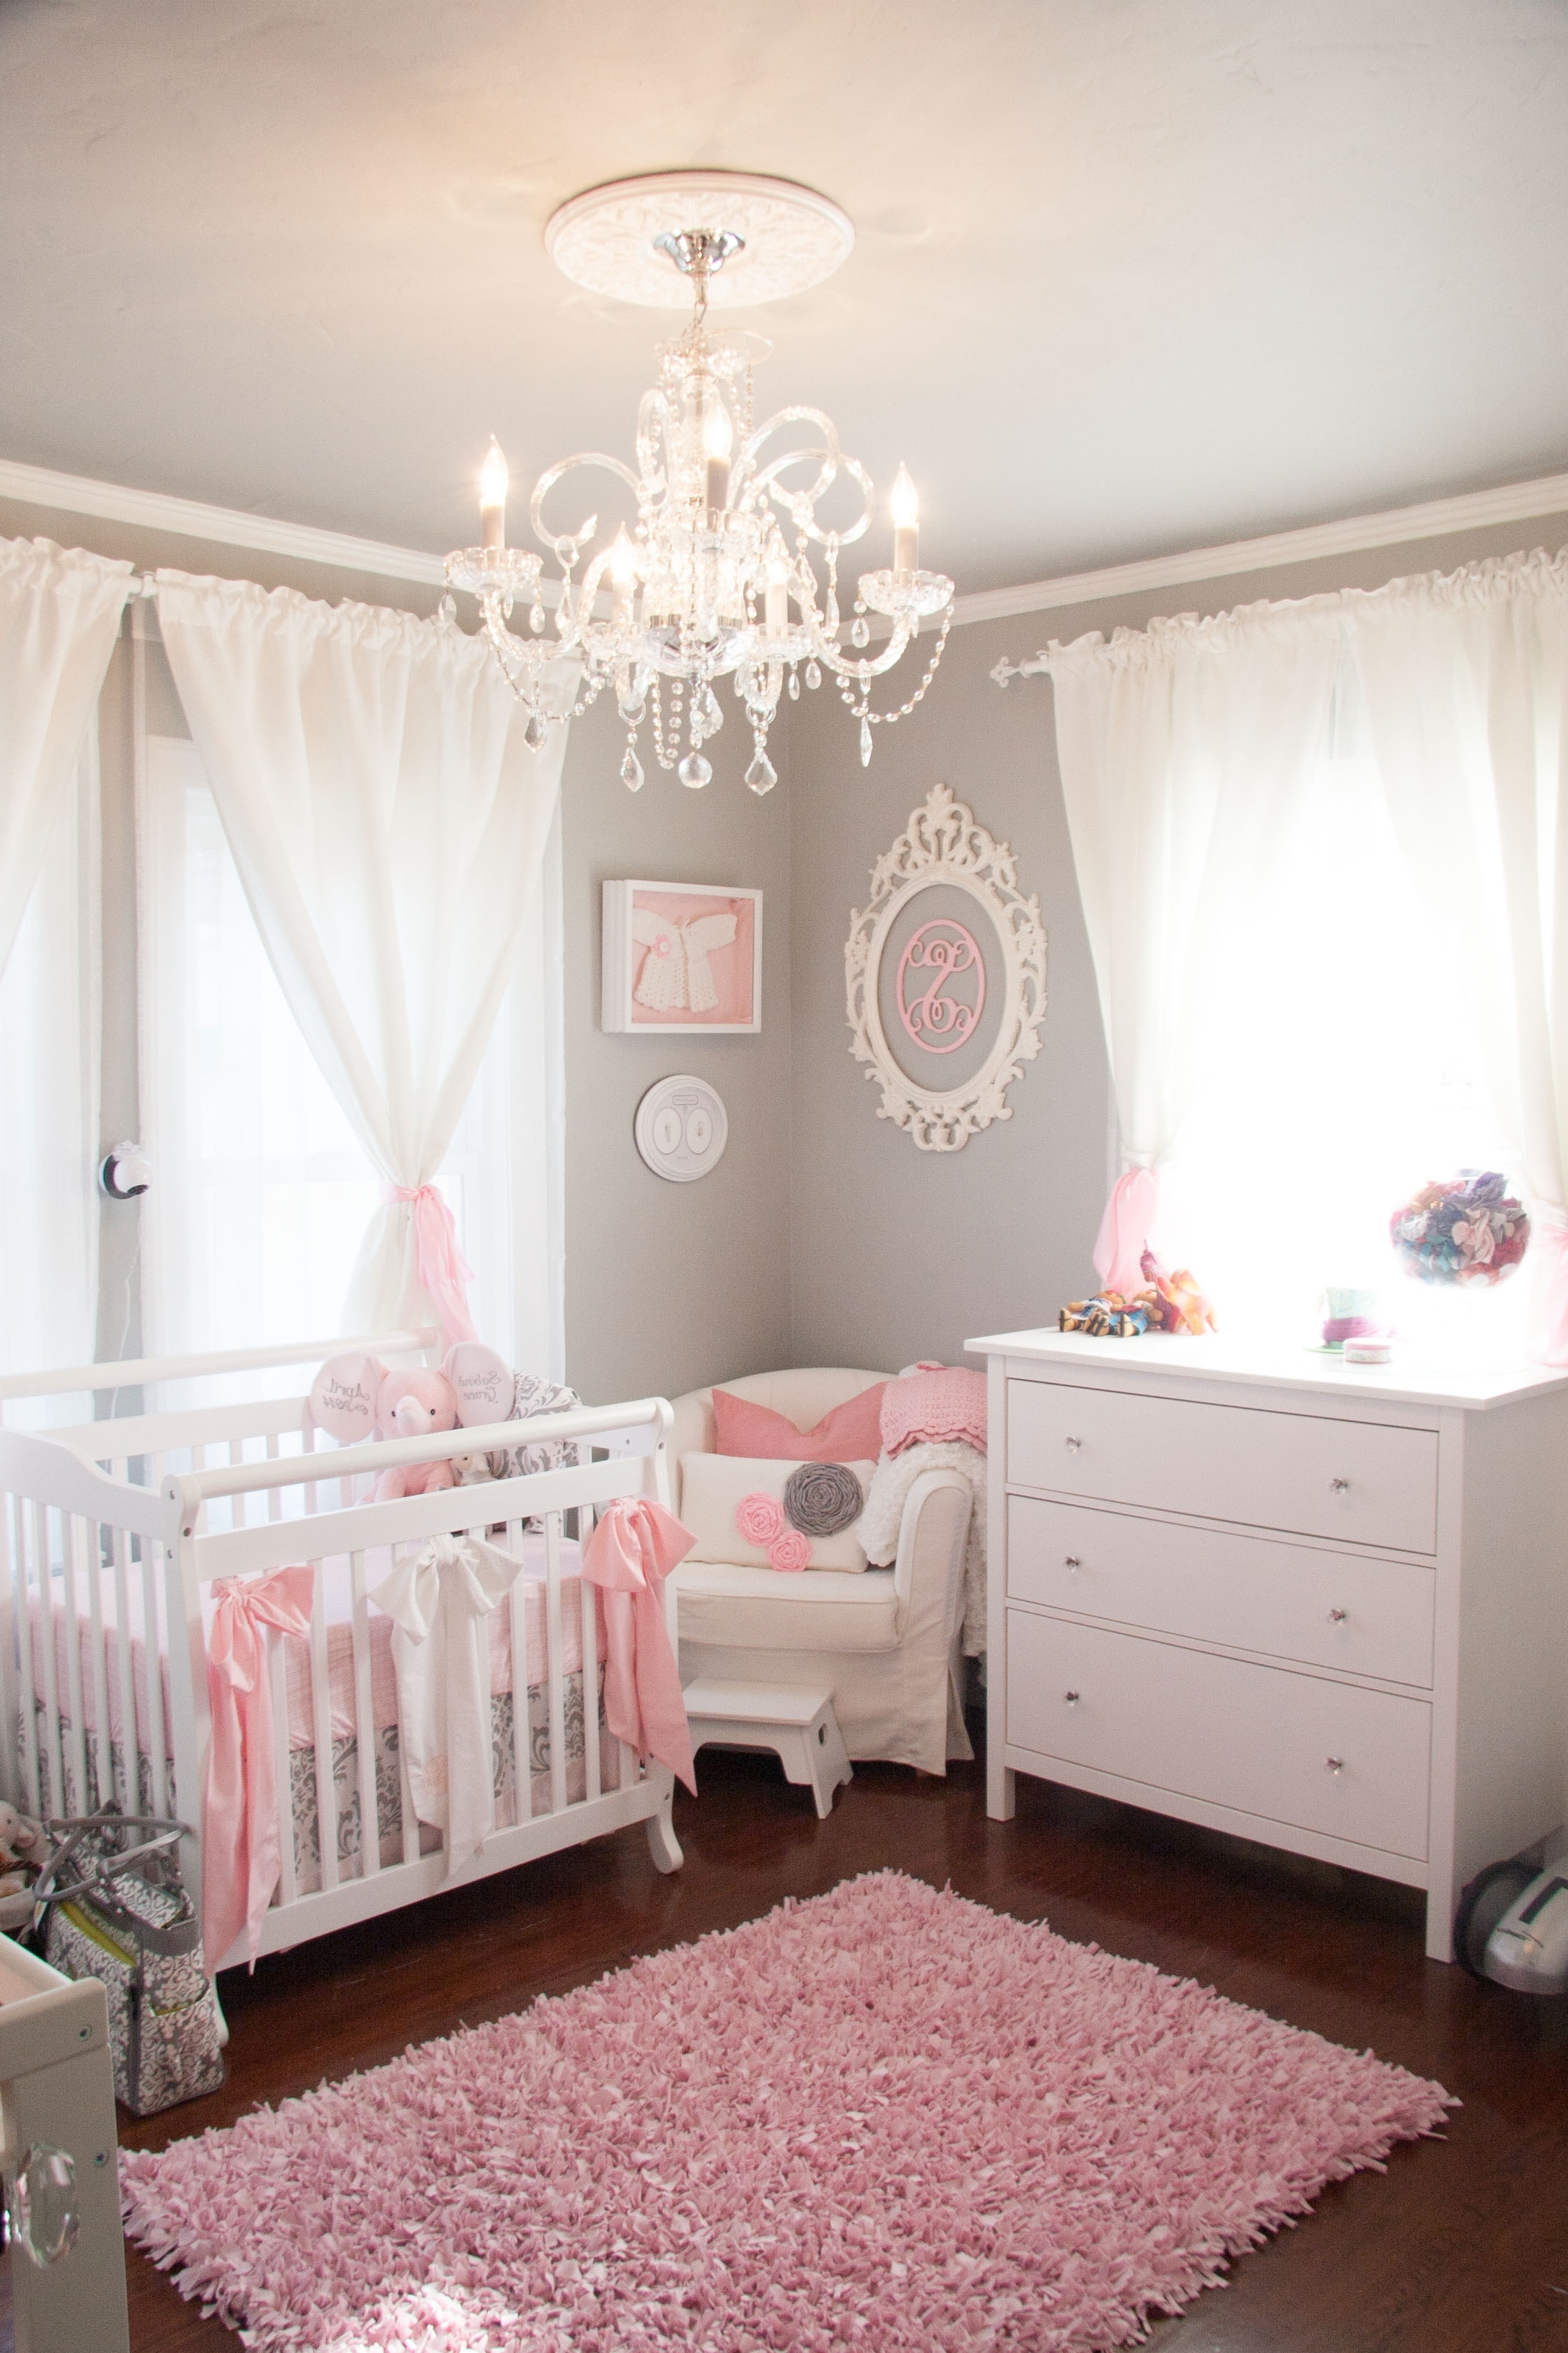 Chandeliers For Baby Girl Room In Most Popular Tiny Budget In A Tiny Room For A Tiny Princess – Project Nursery (View 7 of 15)